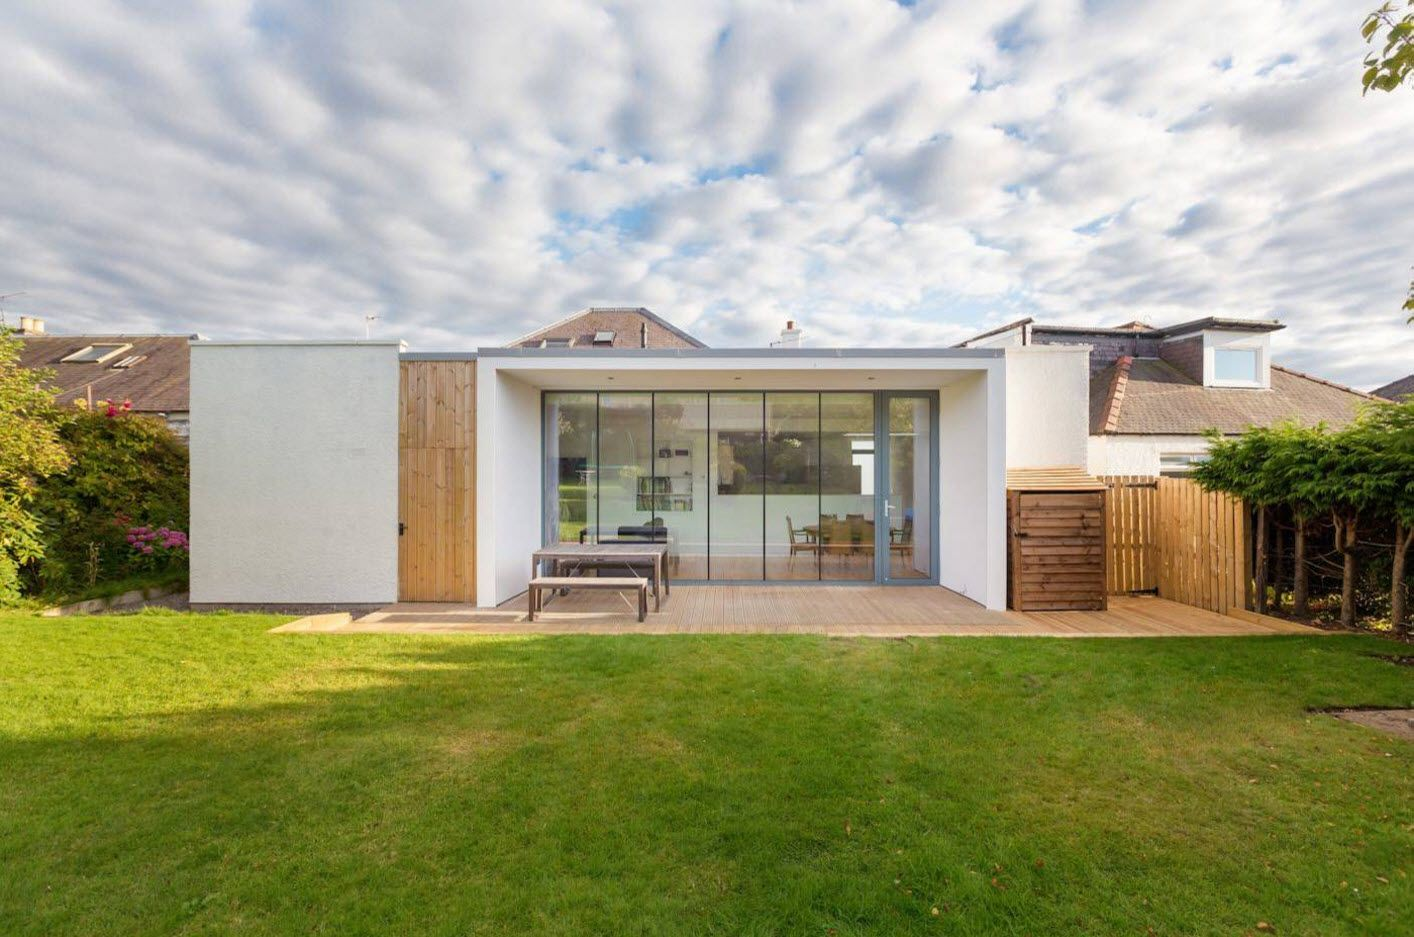 Gorgeous boxed cottage with concreted porch and green lawn in front of it